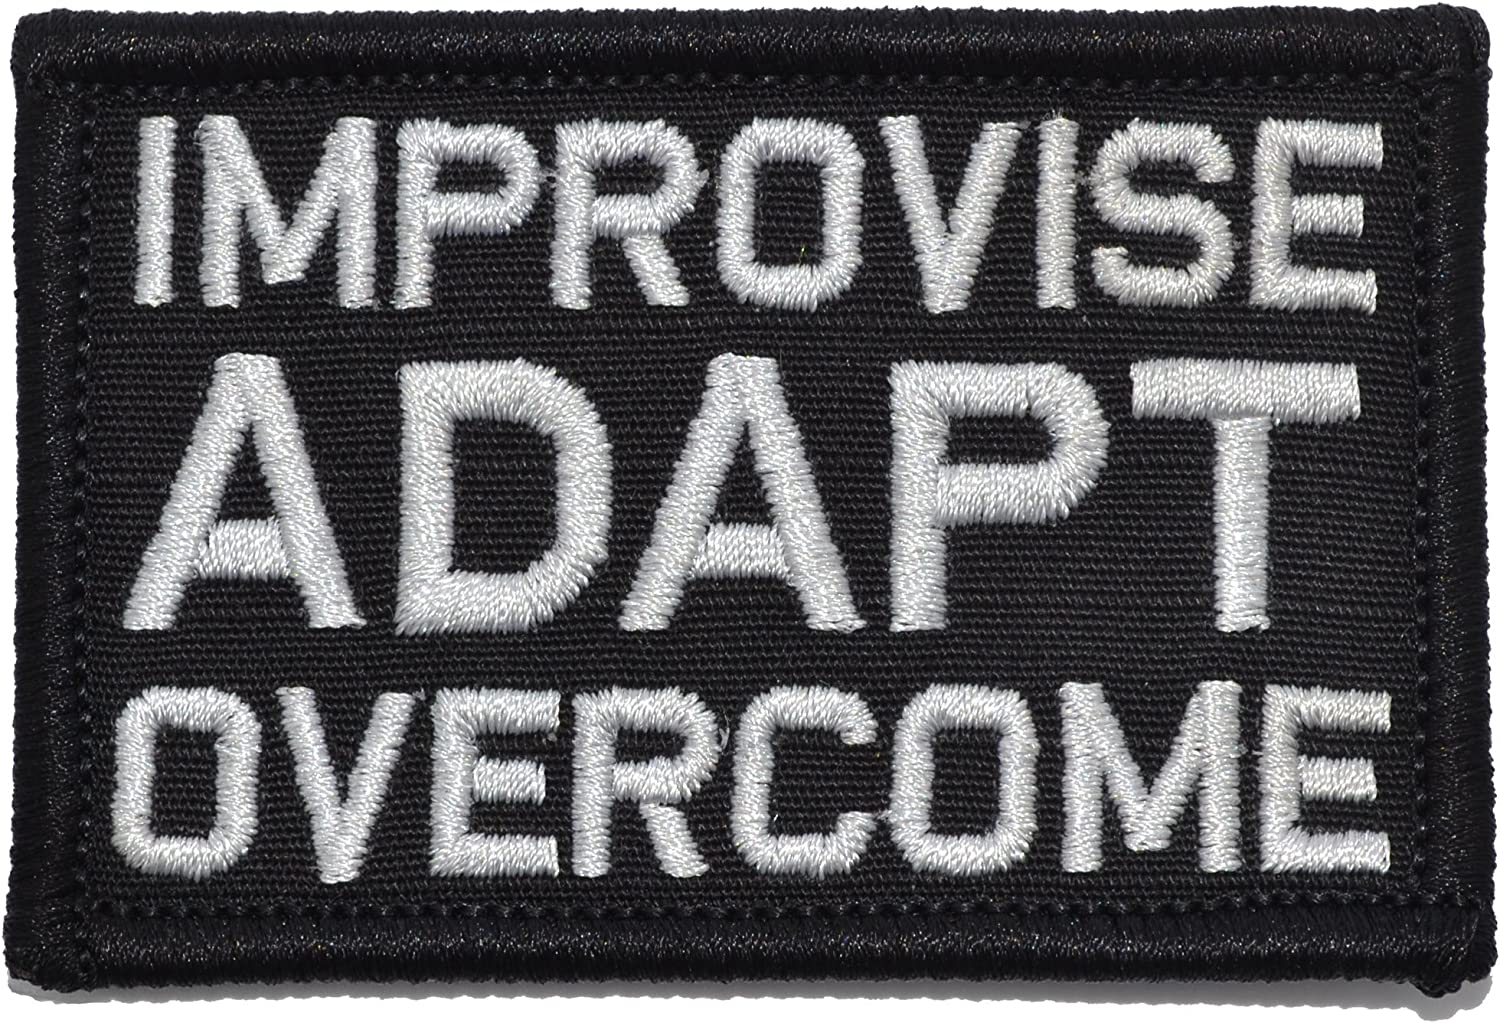 Improvise Adapt Overcome In a popularity - 2x3 Black Over item handling ☆ Patch